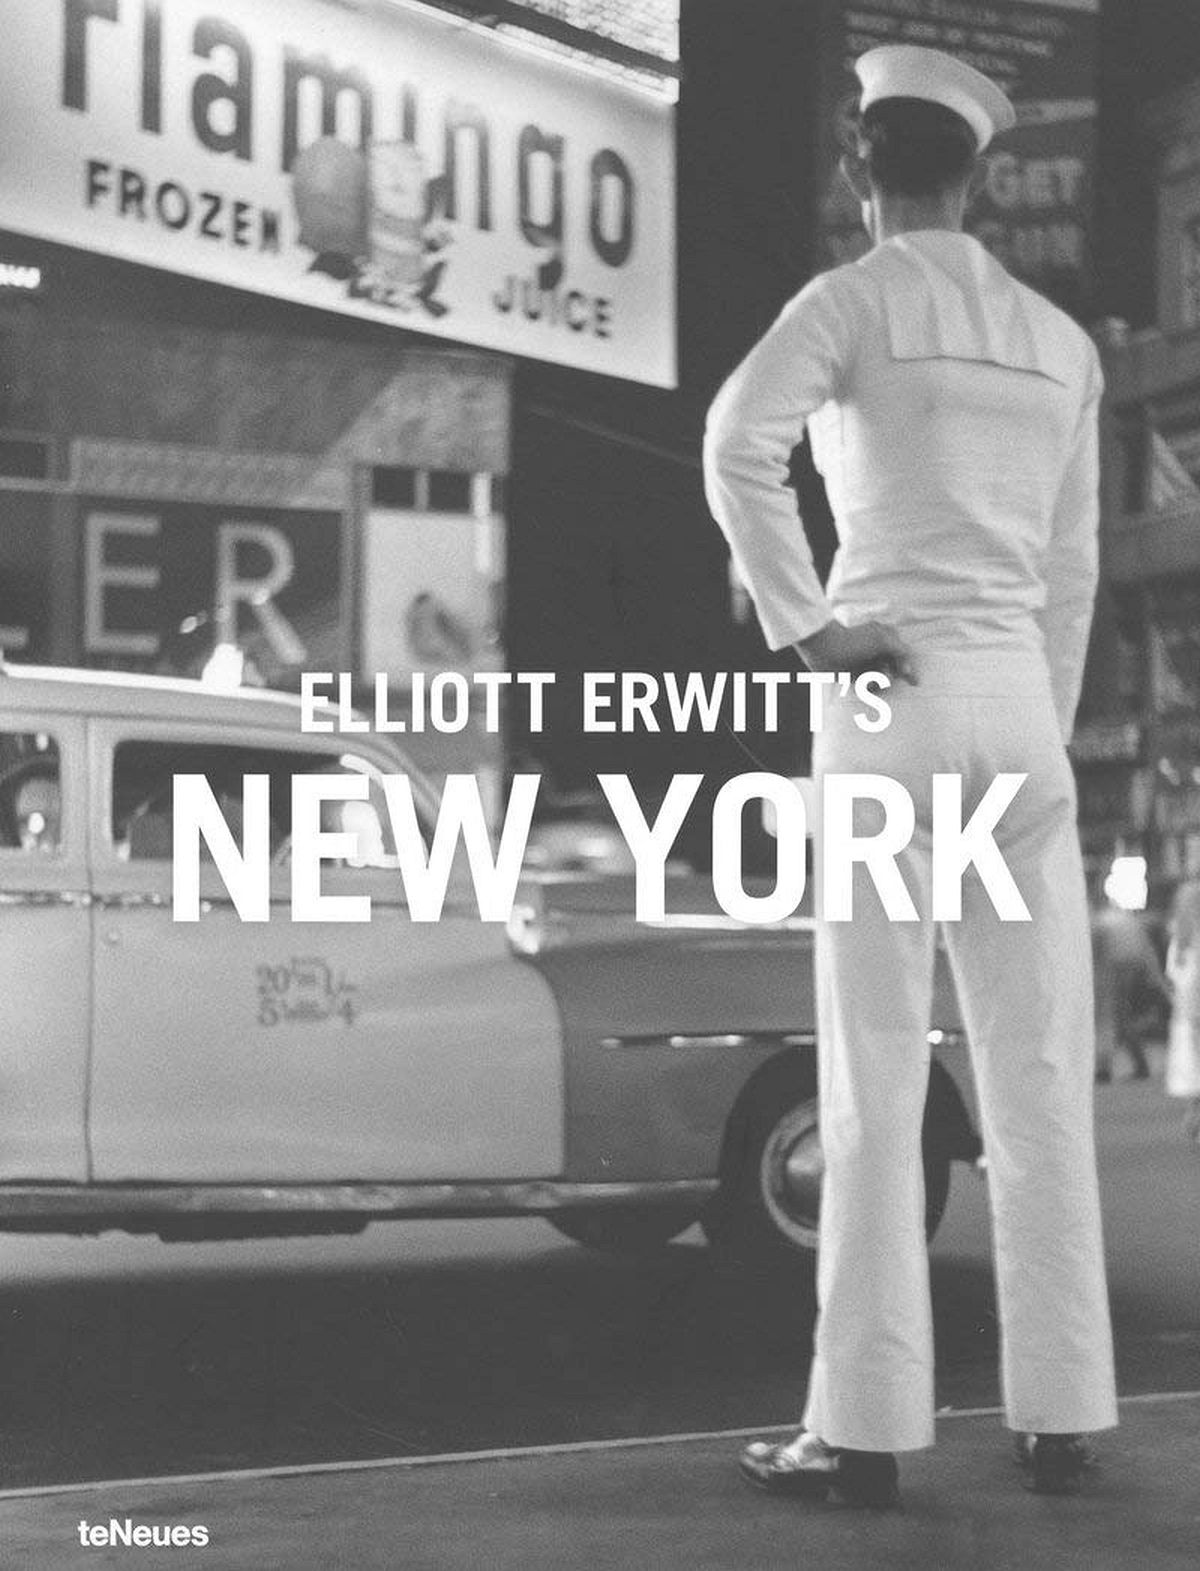 Elliott Erwitt's New York